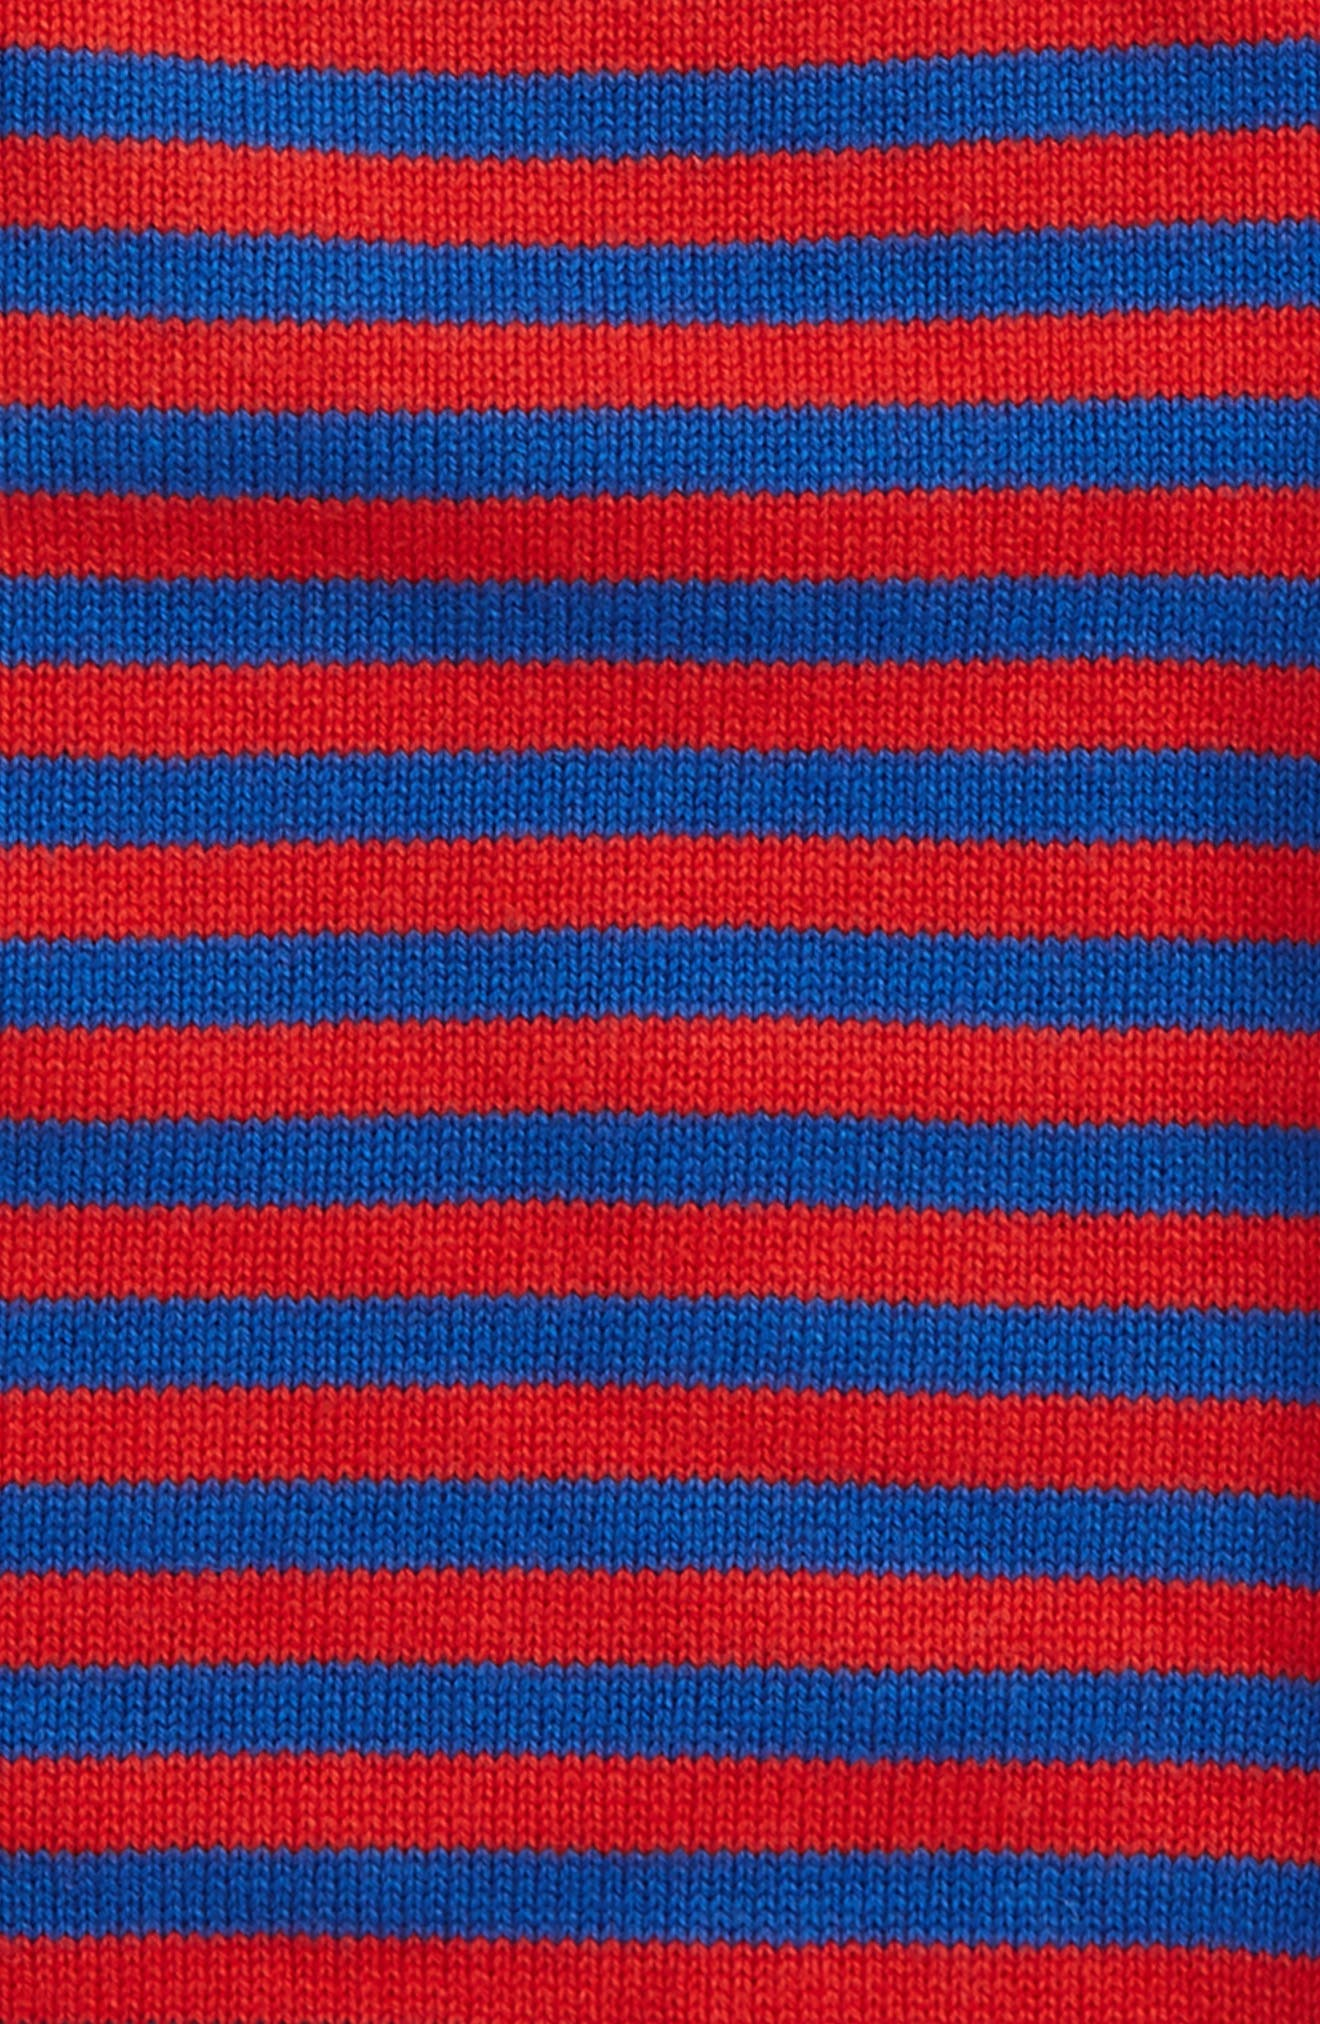 Hotchpotch Sweater,                             Alternate thumbnail 3, color,                             604